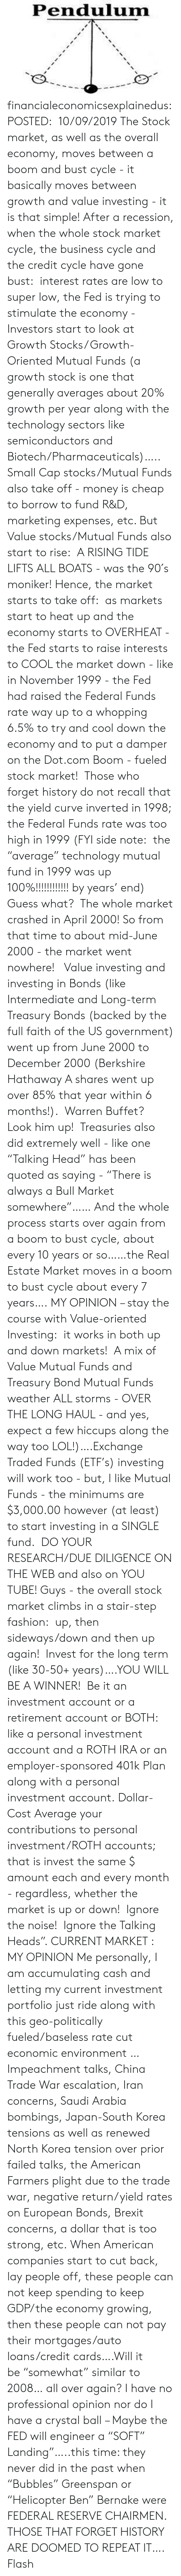 "Fund: Pendulum financialeconomicsexplainedus: POSTED:  10/09/2019 The Stock market, as well as the overall economy, moves between a boom and bust cycle - it basically moves between growth and value investing - it is that simple! After a recession, when the whole stock market cycle, the business cycle and the credit cycle have gone bust:  interest rates are low to super low, the Fed is trying to stimulate the economy - Investors start to look at Growth Stocks/ Growth-Oriented Mutual Funds (a growth stock is one that generally averages about 20% growth per year along with the technology sectors like semiconductors and Biotech/Pharmaceuticals)….. Small Cap stocks/Mutual Funds also take off - money is cheap to borrow to fund R&D, marketing expenses, etc.  But Value stocks/Mutual Funds also start to rise:  A RISING TIDE LIFTS ALL BOATS - was the 90′s moniker! Hence, the market starts to take off:  as markets start to heat up and the economy starts to OVERHEAT - the Fed starts to raise interests to COOL the market down - like in November 1999 - the Fed had raised the Federal Funds rate way up to a whopping 6.5% to try and cool down the economy and to put a damper on the Dot.com Boom - fueled stock market!   Those who forget history do not recall that the yield curve inverted in 1998; the Federal Funds rate was too high in 1999 (FYI side note:  the ""average"" technology mutual fund in 1999 was up 100%!!!!!!!!!!!! by years' end)  Guess what?  The whole market crashed in April 2000! So from that time to about mid-June 2000 - the market went nowhere!   Value investing and investing in Bonds (like Intermediate and Long-term Treasury Bonds (backed by the full faith of the US government) went up from June 2000 to December 2000 (Berkshire Hathaway A shares went up over 85% that year within 6 months!).  Warren Buffet?  Look him up!  Treasuries also did extremely well - like one ""Talking Head"" has been quoted as saying - ""There is always a Bull Market somewhere""…… And the whole process starts over again from a boom to bust cycle, about every 10 years or so……the Real Estate Market moves in a boom to bust cycle about every 7 years…. MY OPINION – stay the course with Value-oriented Investing:  it works in both up and down markets!  A mix of Value Mutual Funds and Treasury Bond Mutual Funds weather ALL storms - OVER THE LONG HAUL - and yes, expect a few hiccups along the way too LOL!)….Exchange Traded Funds (ETF's) investing will work too - but, I like Mutual Funds - the minimums are $3,000.00 however (at least) to start investing in a SINGLE fund.  DO YOUR RESEARCH/DUE DILIGENCE ON THE WEB and also on YOU TUBE! Guys - the overall stock market climbs in a stair-step fashion:  up, then sideways/down and then up again!  Invest for the long term (like 30-50+ years)….YOU WILL BE A WINNER!  Be it an investment account or a retirement account or BOTH:  like a personal investment account and a ROTH IRA or an employer-sponsored 401k Plan along with a personal investment account. Dollar-Cost Average your contributions to personal investment/ROTH accounts; that is invest the same $ amount each and every month - regardless, whether the market is up or down!  Ignore the noise!  Ignore the Talking Heads"". CURRENT MARKET :  MY OPINION Me personally, I am accumulating cash and letting my current investment portfolio just ride along with this geo-politically fueled/baseless rate cut economic environment …Impeachment talks, China Trade War escalation, Iran concerns, Saudi Arabia bombings, Japan-South Korea tensions as well as renewed North Korea tension over prior failed talks, the American Farmers plight due to the trade war, negative return/yield rates on European Bonds, Brexit concerns, a dollar that is too strong, etc. When American companies start to cut back, lay people off, these people can not keep spending to keep GDP/the economy growing, then these people can not pay their mortgages/auto loans/credit cards….Will it be ""somewhat"" similar to 2008… all over again?  I have no professional opinion nor do I have a crystal ball – Maybe the FED will engineer a ""SOFT"" Landing""…..this time: they never did in the past when ""Bubbles"" Greenspan or ""Helicopter Ben"" Bernake were FEDERAL RESERVE CHAIRMEN. THOSE THAT FORGET HISTORY ARE DOOMED TO REPEAT IT…. Flash"